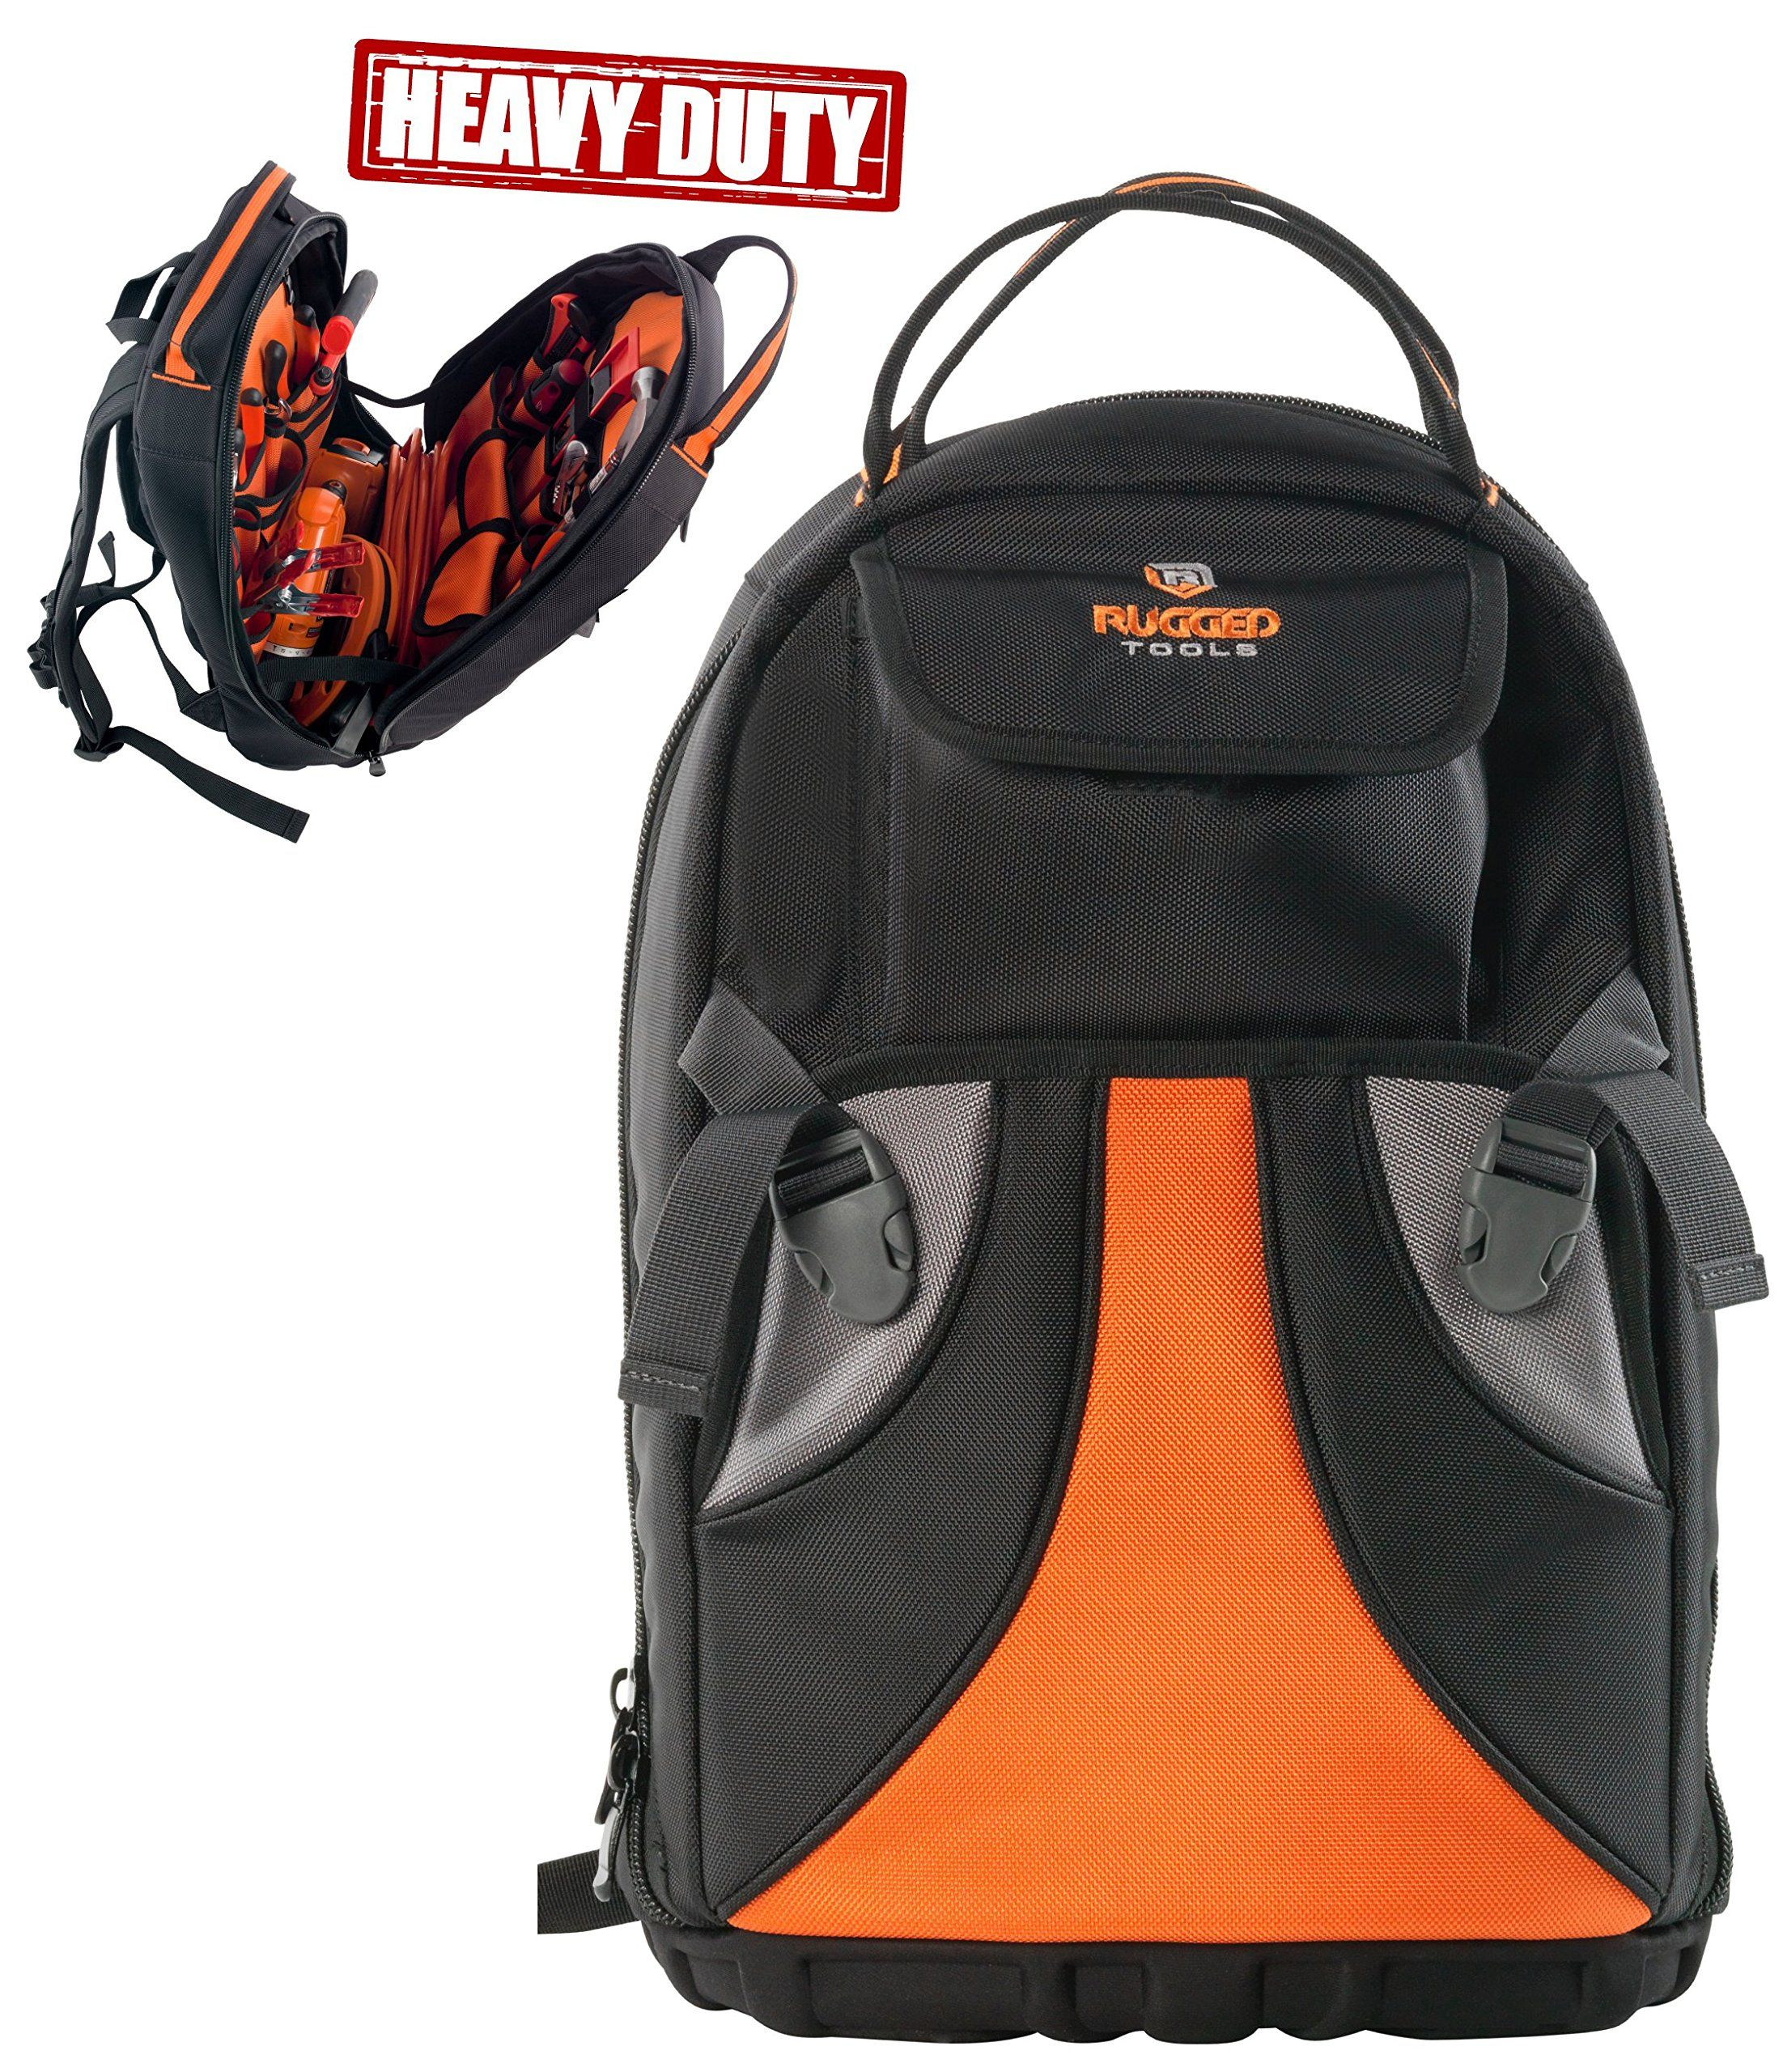 Black//Orange Plumber Rugged Tools Tradesman Tool Backpack 28 Pocket Heavy Duty Jobsite Tool Bag Perfect Storage /& Organizer for a Contractor Electrician HVAC Cable Repairman